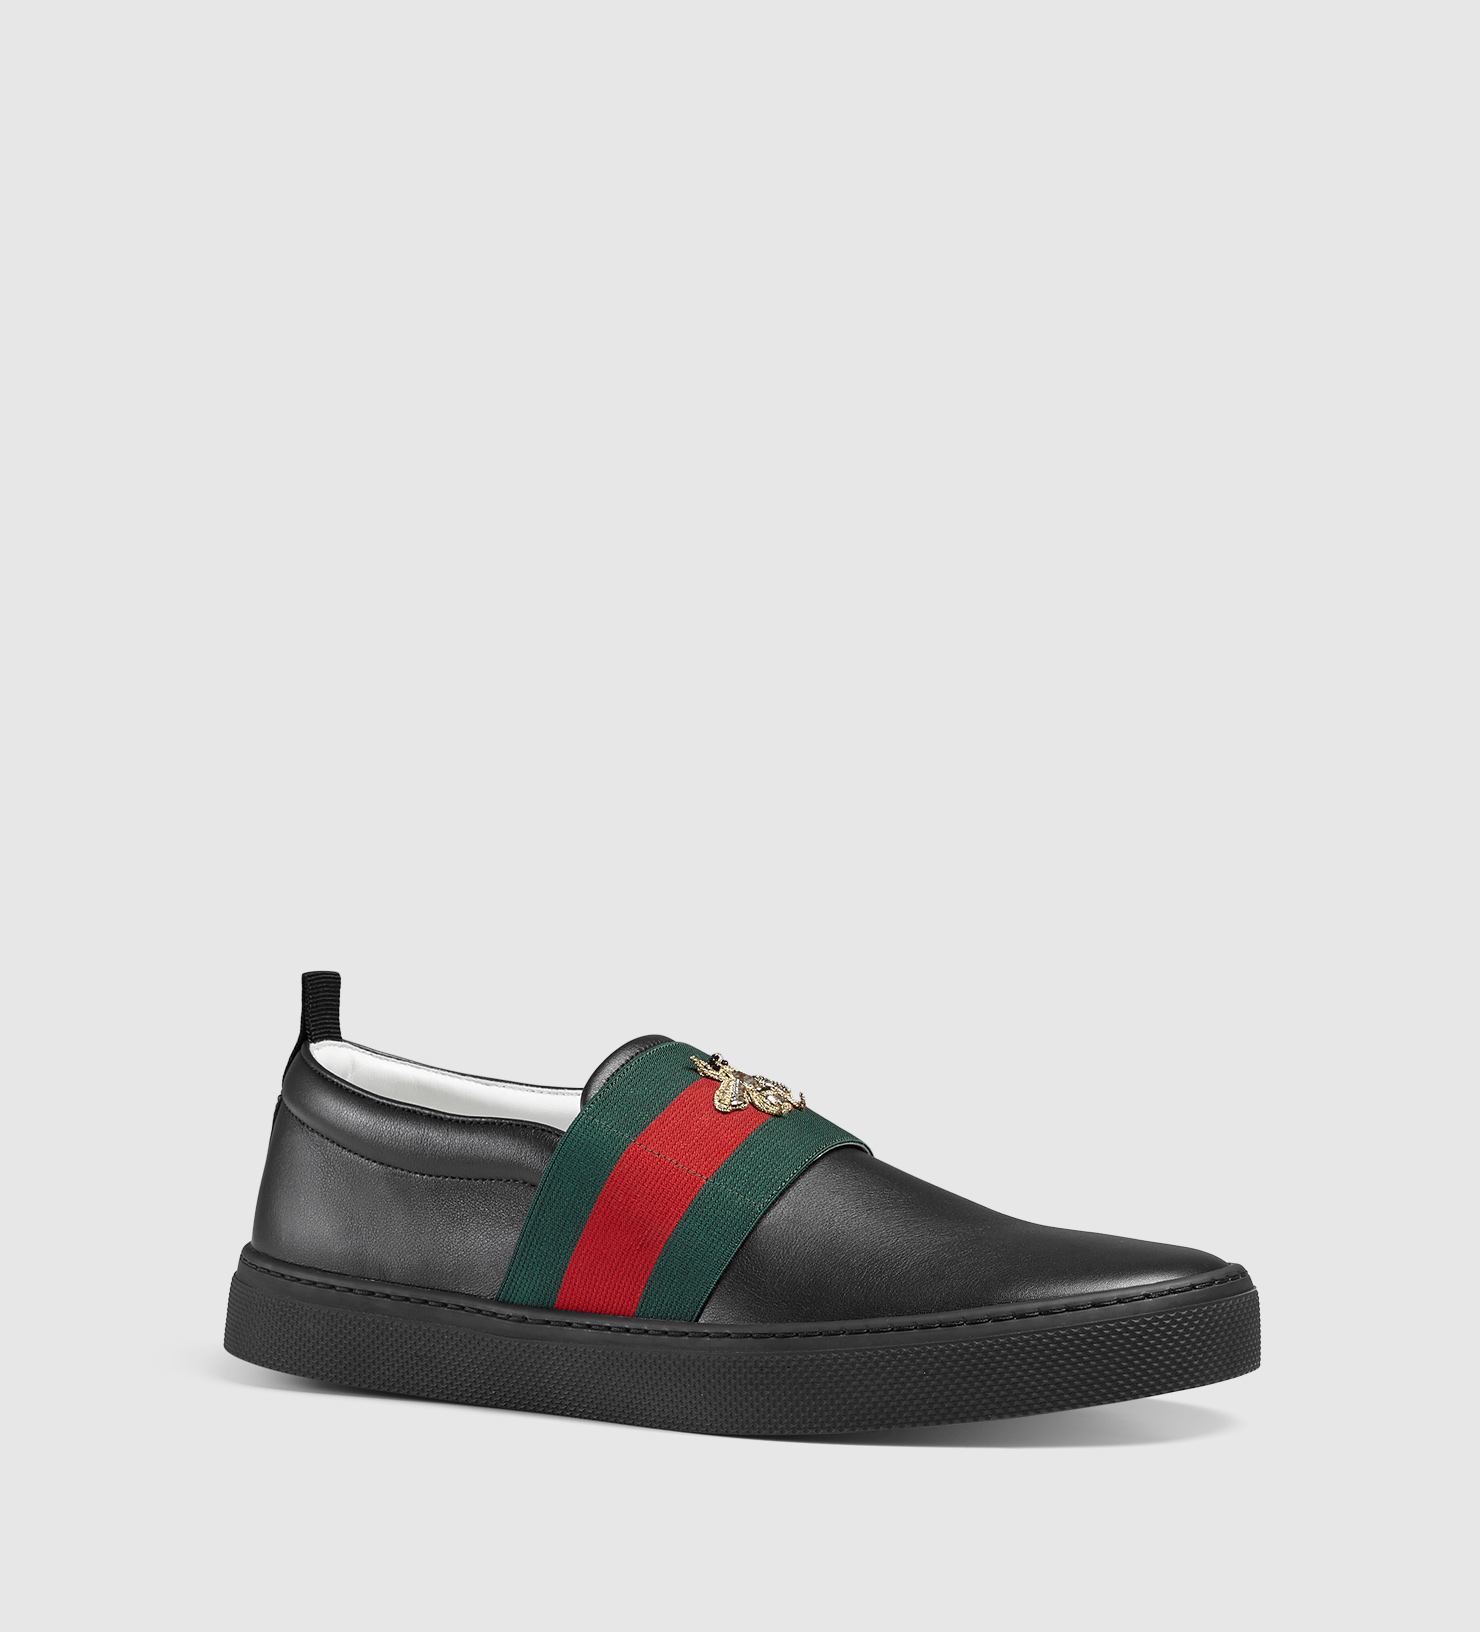 f6c38bccc Gucci Leather Sneaker With Web And Bee in Black for Men - Lyst